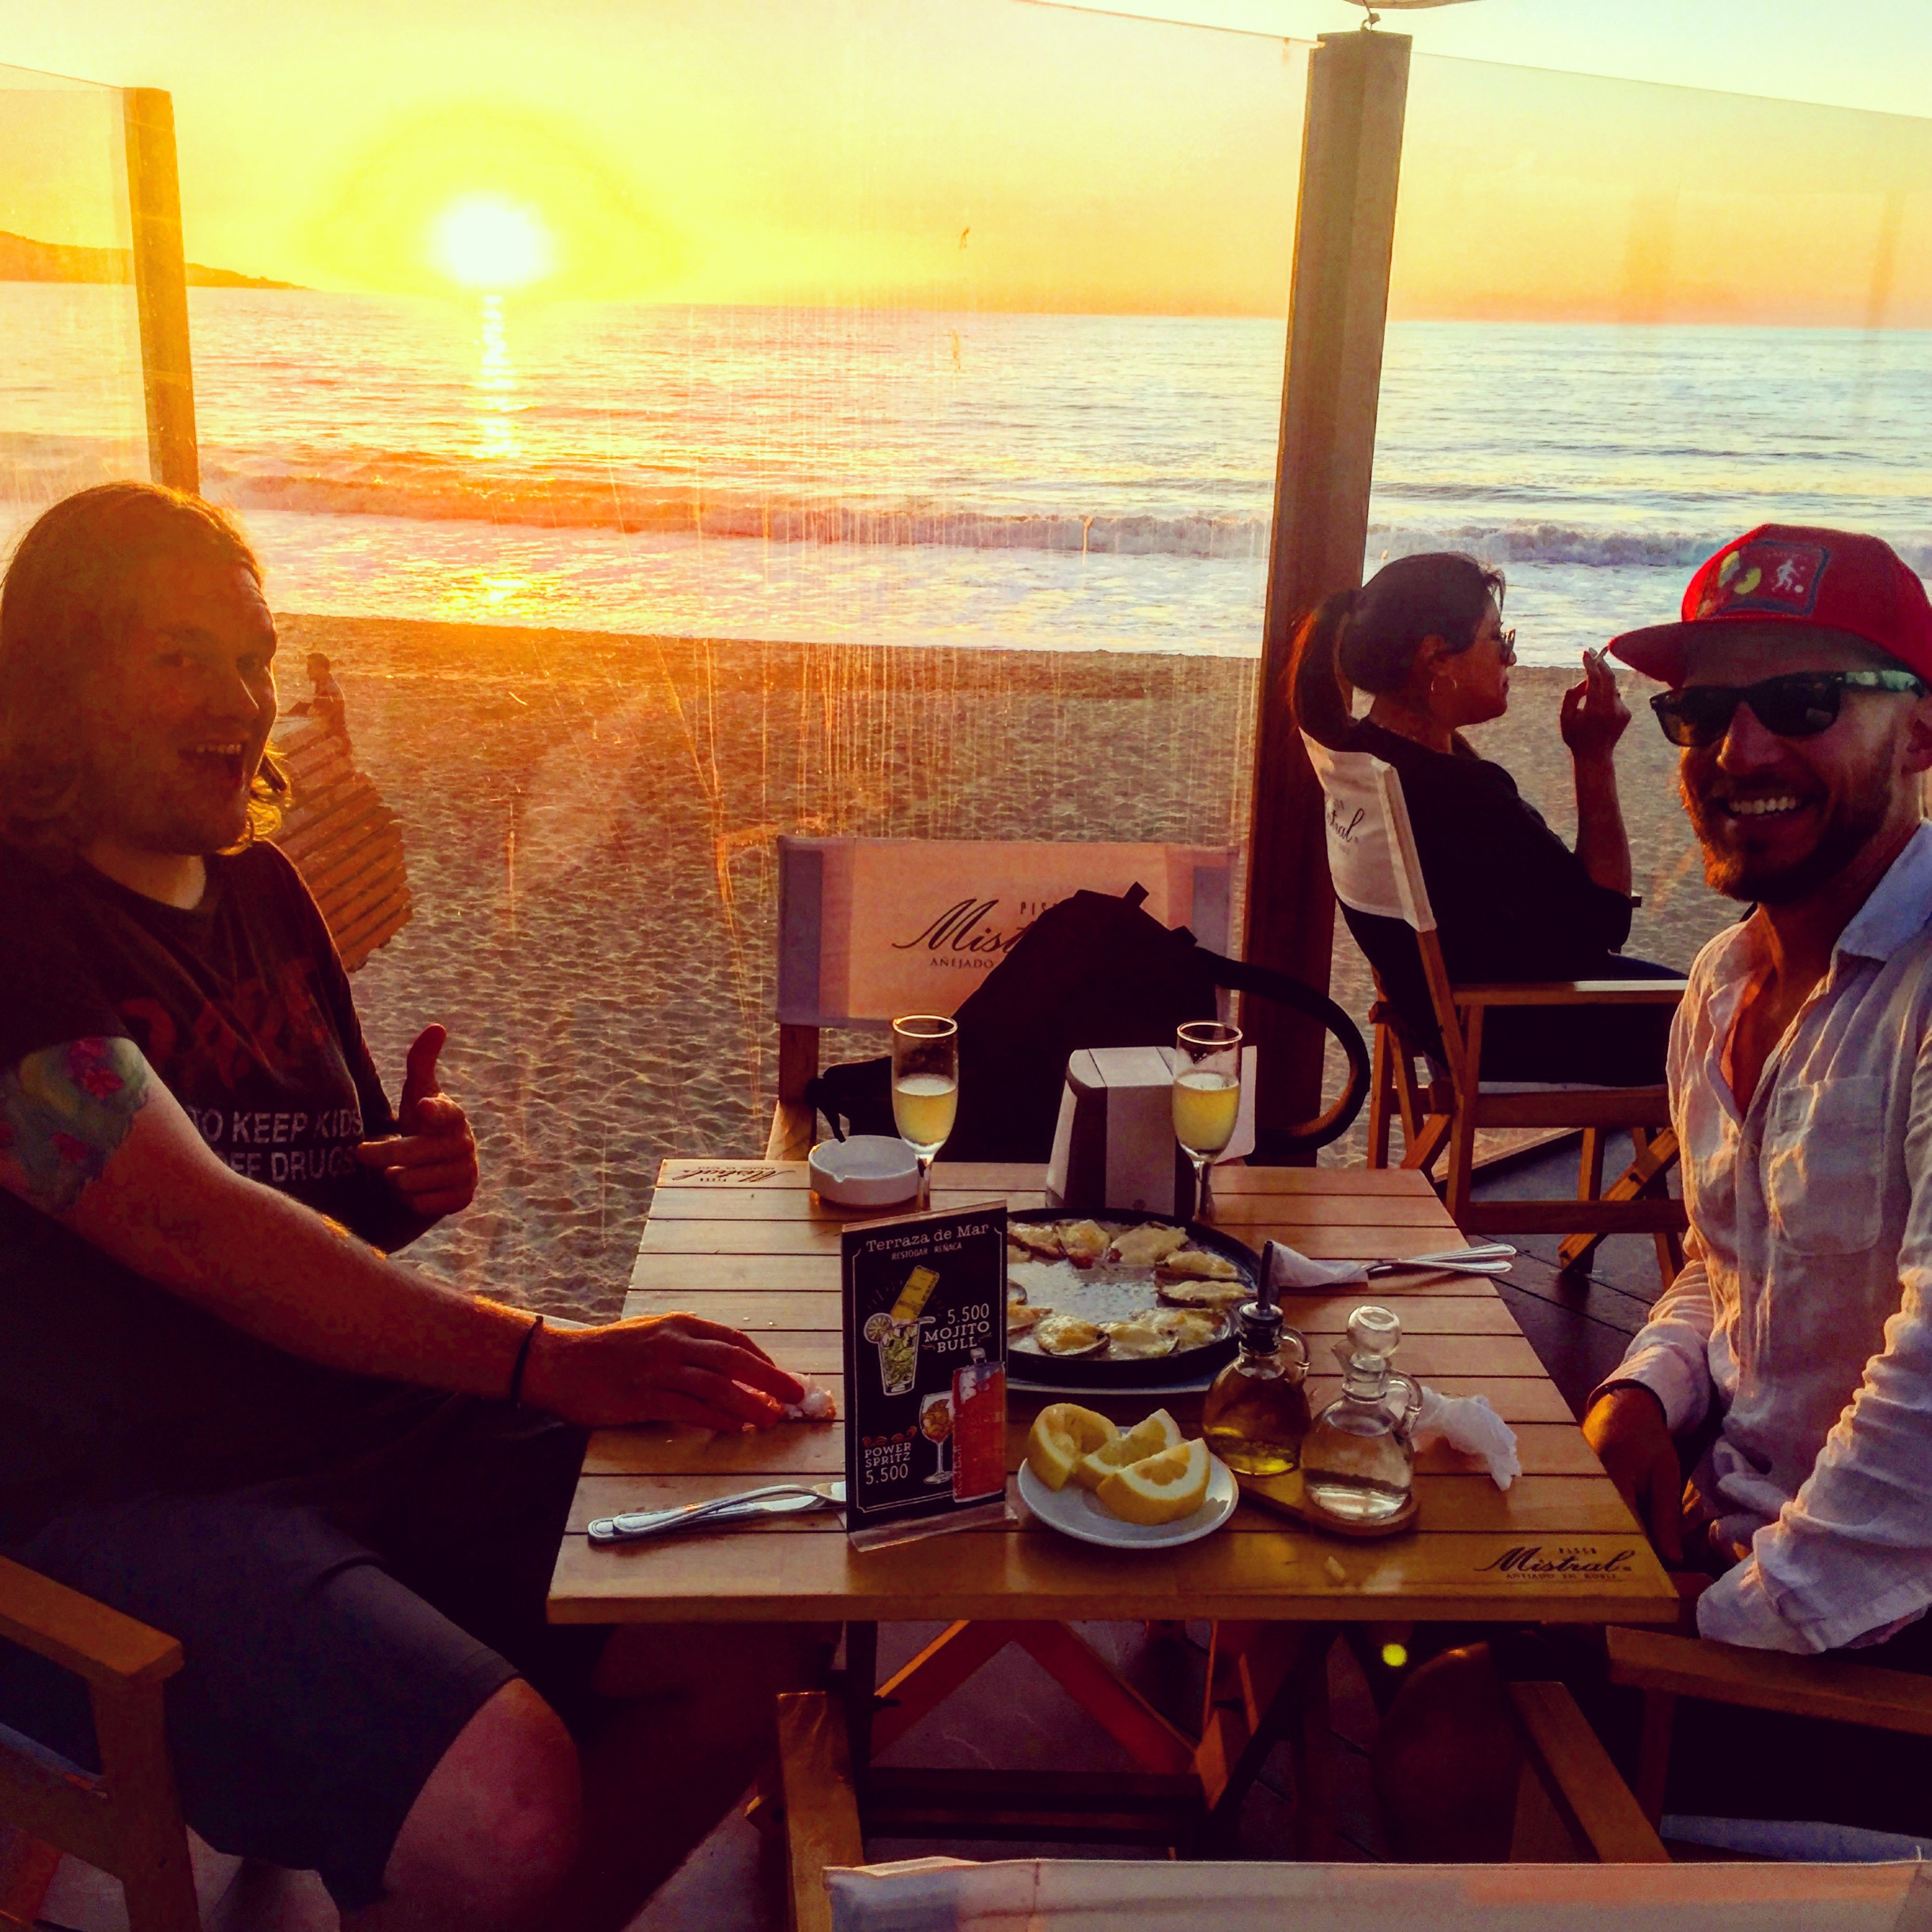 The gringos eat machas a la permesana and drink pisco sours on during the sunset on a beach in Reñaca Chile.